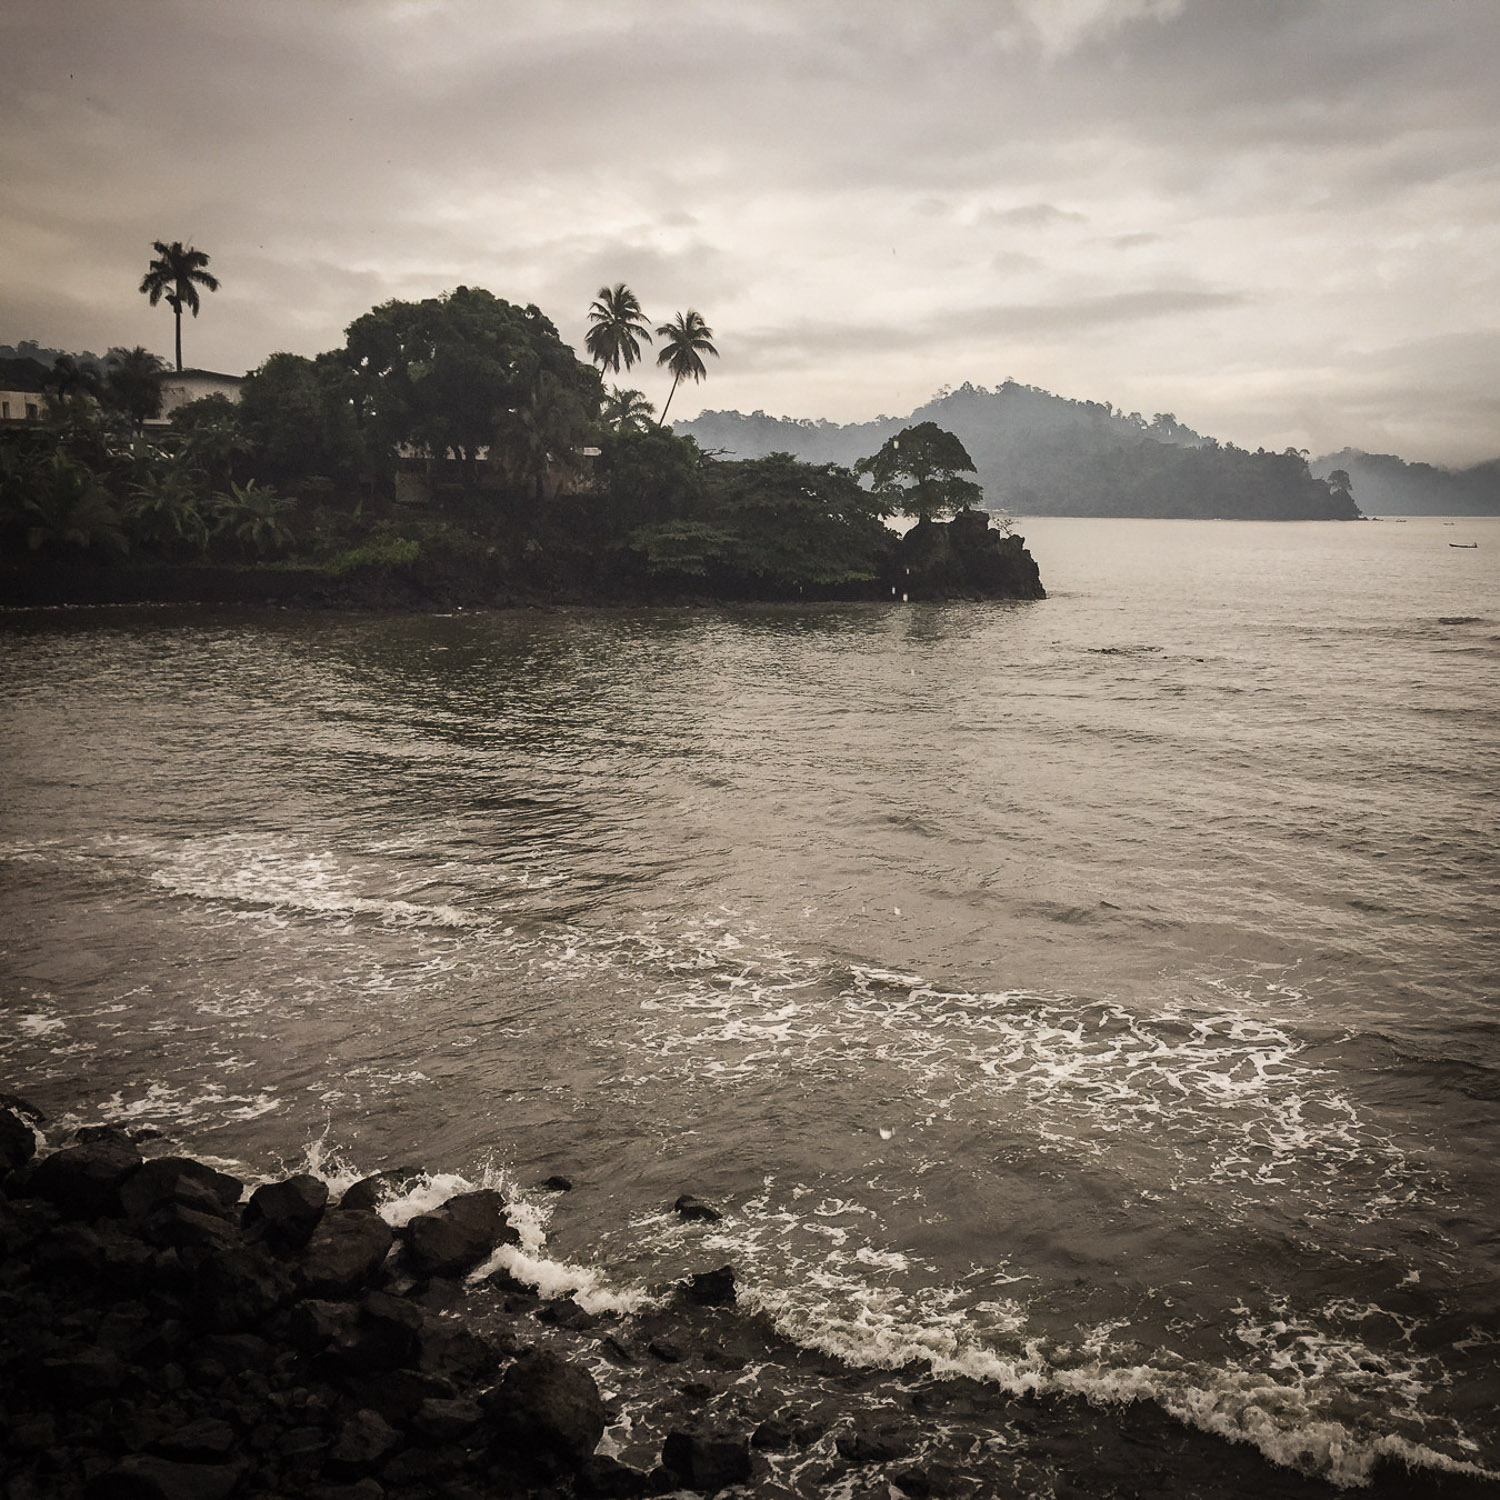 A view of the Douala waterfront with a leaden sky. Noah Strycker